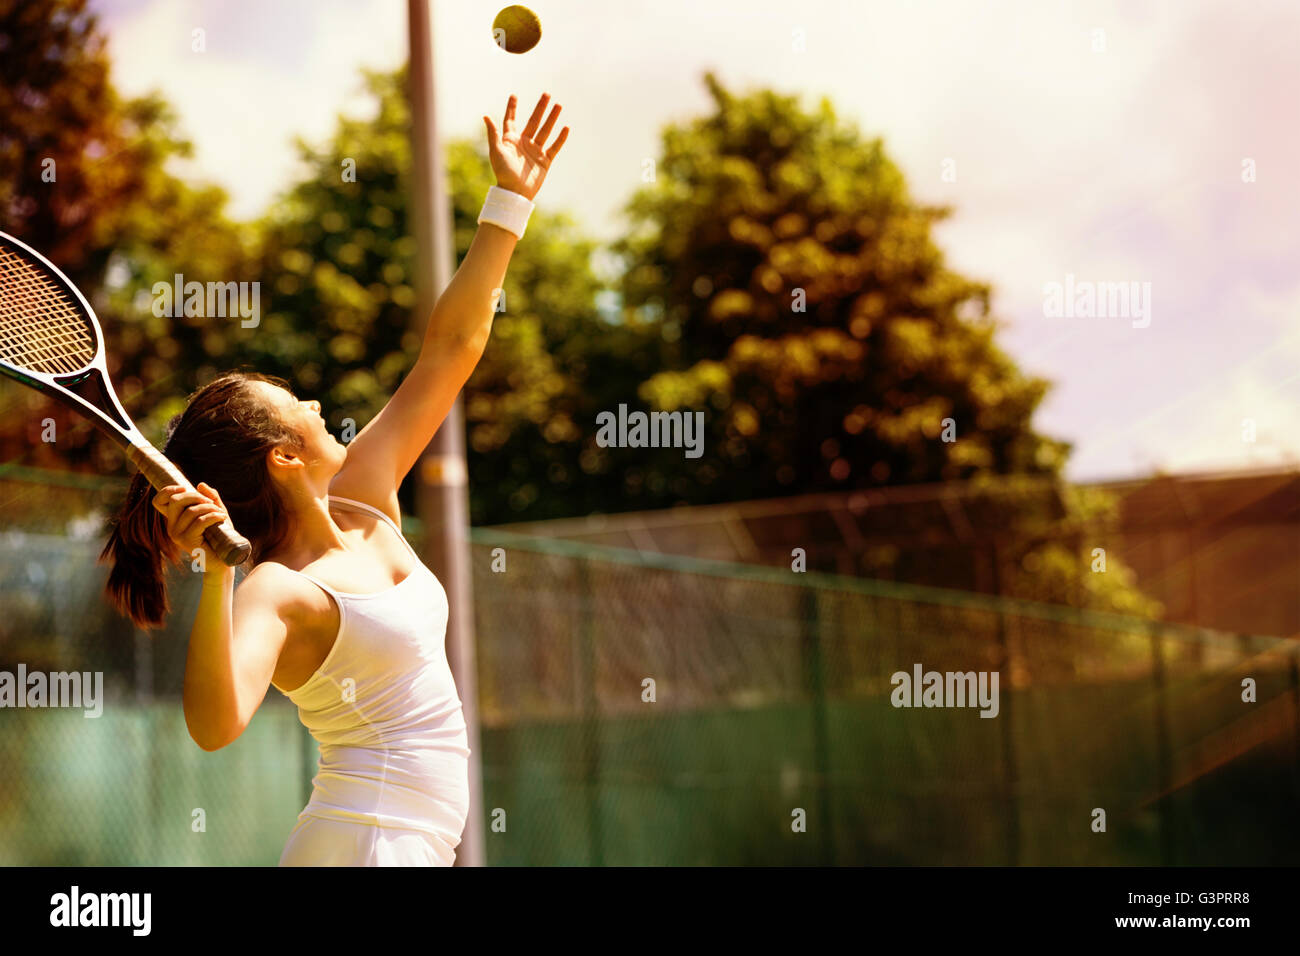 Rear view of tennis player serving - Stock Image